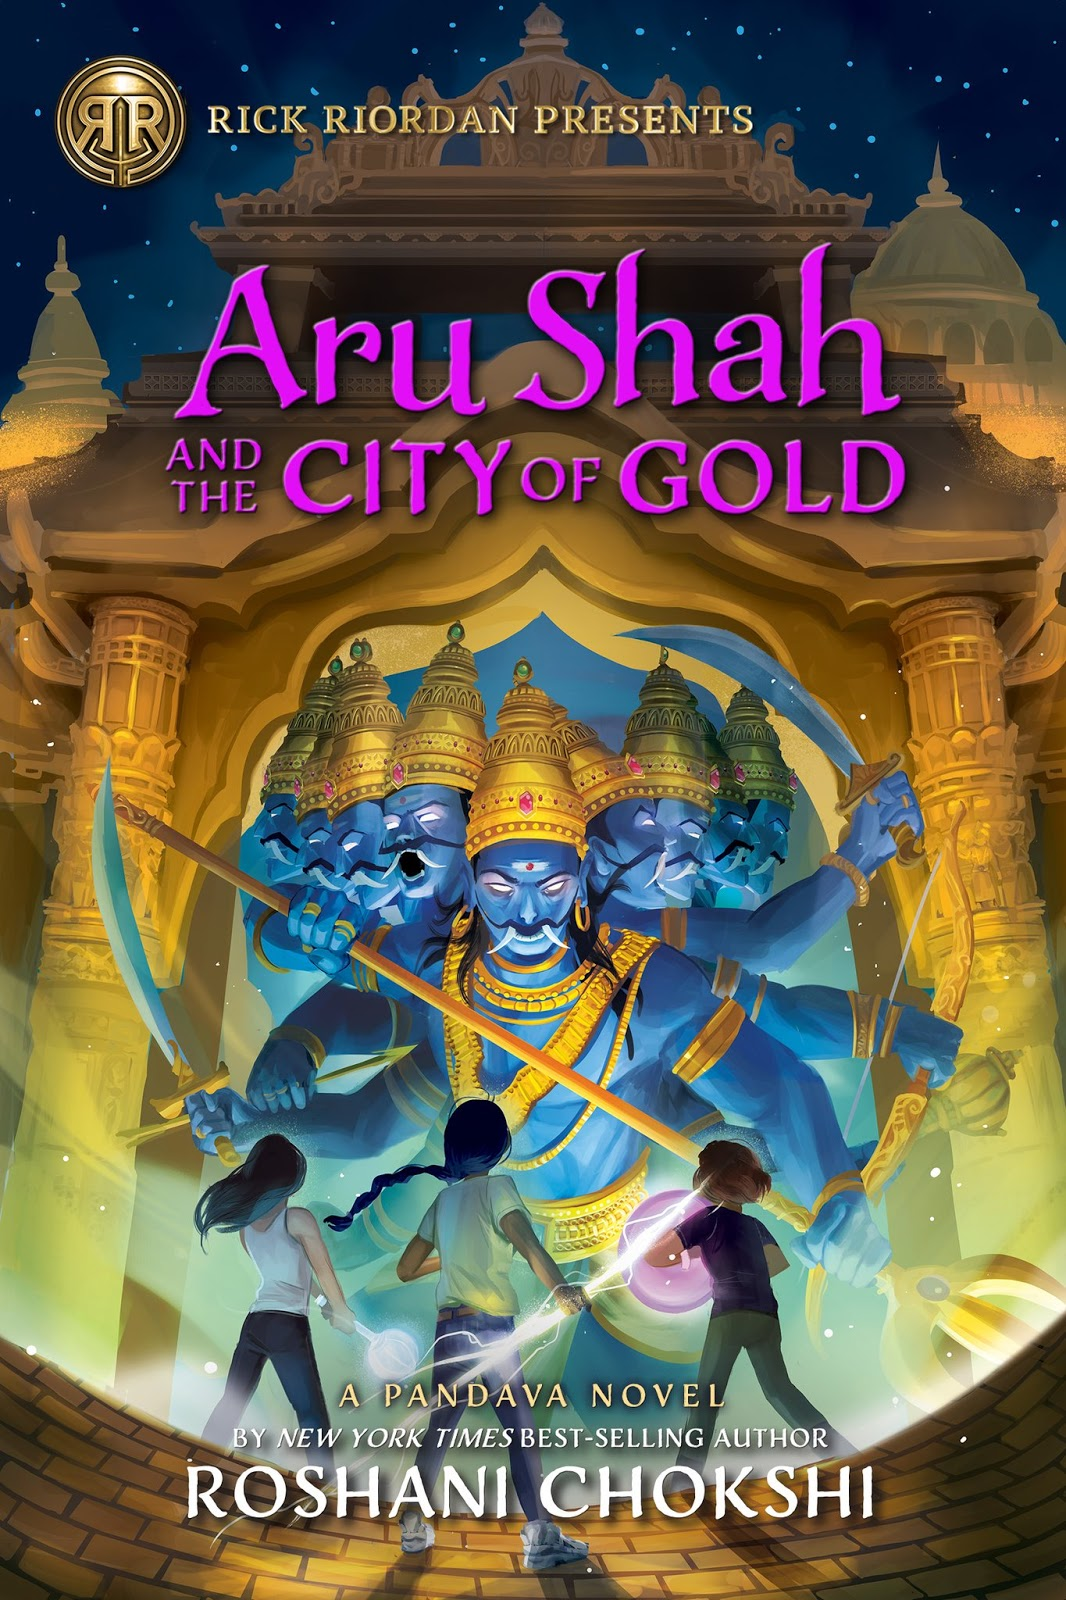 Aru Shah and the City of Gold by Roshani Chokshi